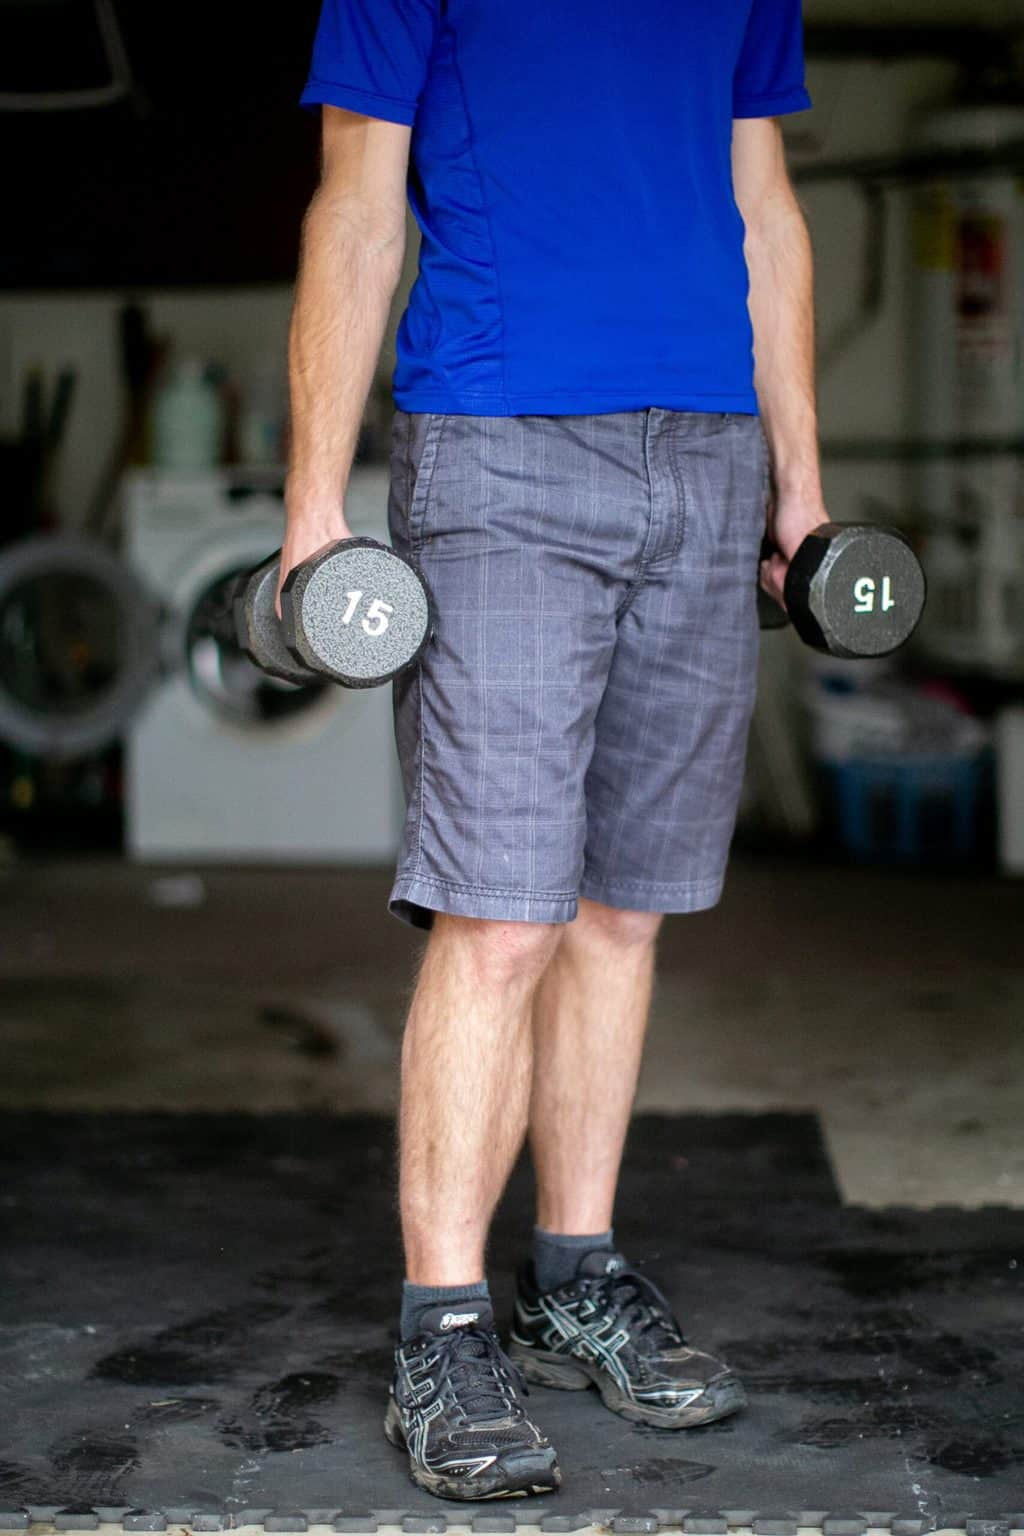 Man carrying 15lb dumbbell weights